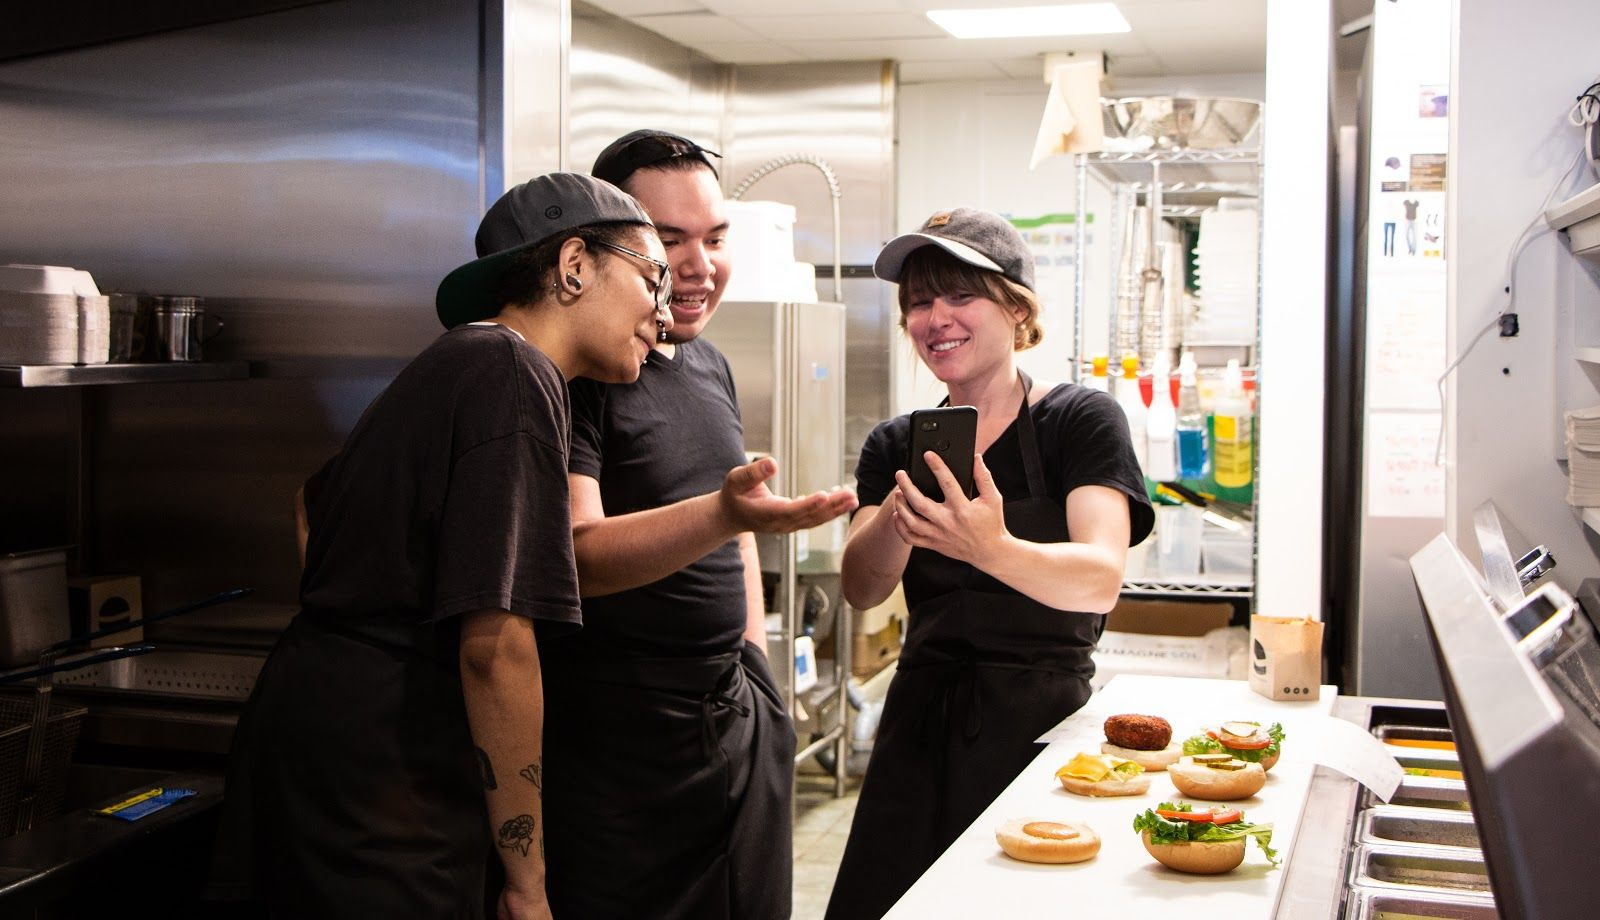 [Case Study] How The Burger's Priest Made Life in Their Restaurant Easier with 7shifts